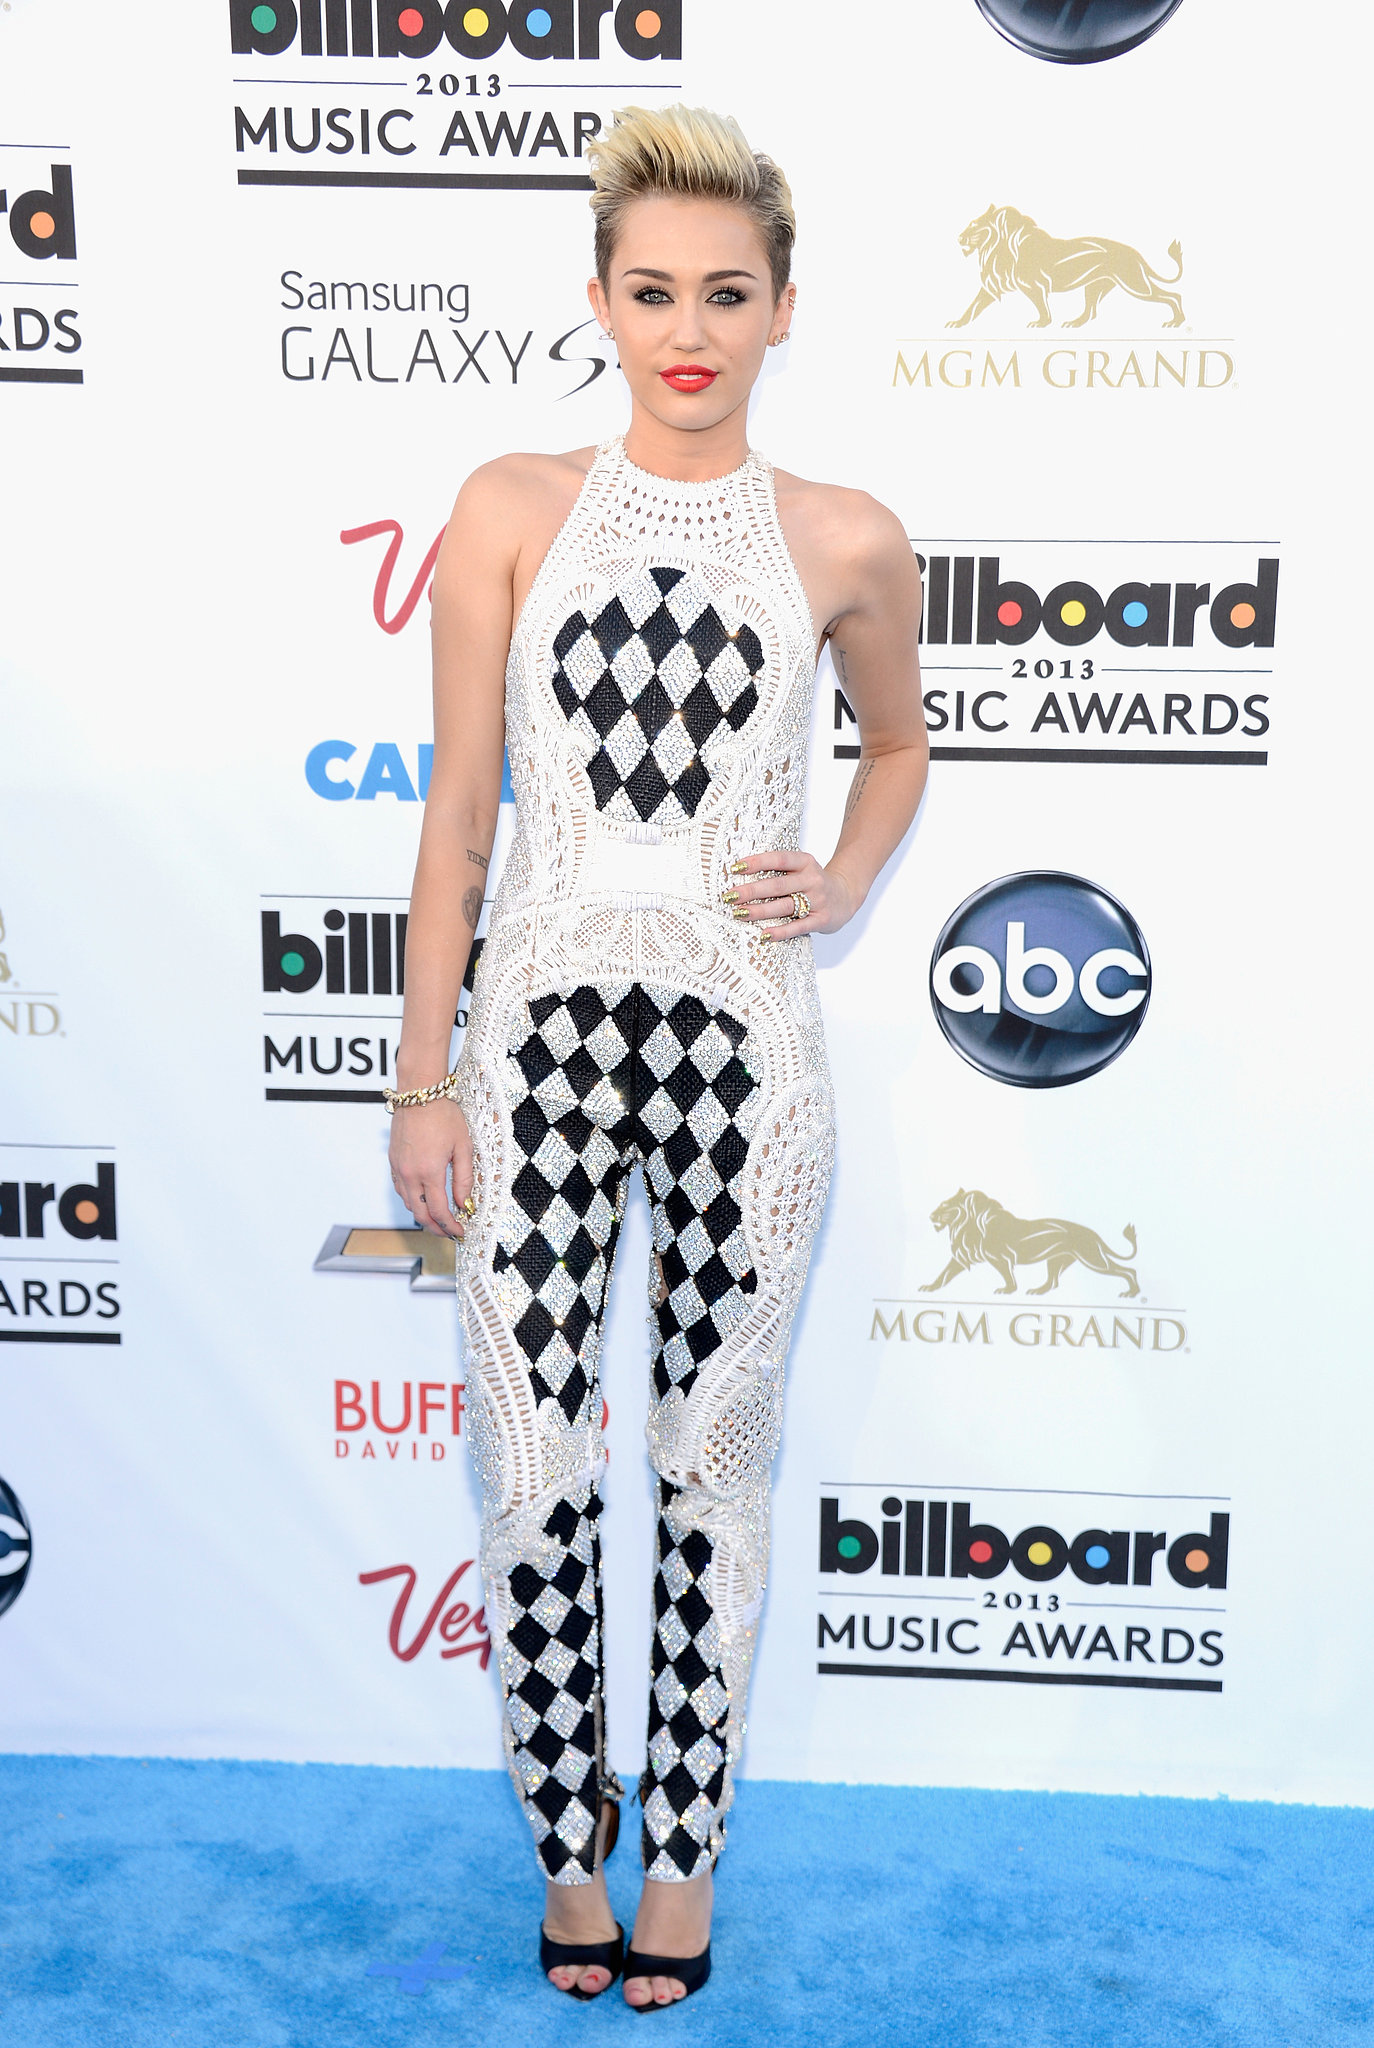 For the 2013 Billboard Music Awards, the singer donned a black-and-white Balmain jumpsuit featuring an intricately woven texture and some serious all-over checkerboard print. Givenchy heels and a bold red lip completed her rocker-chic style.